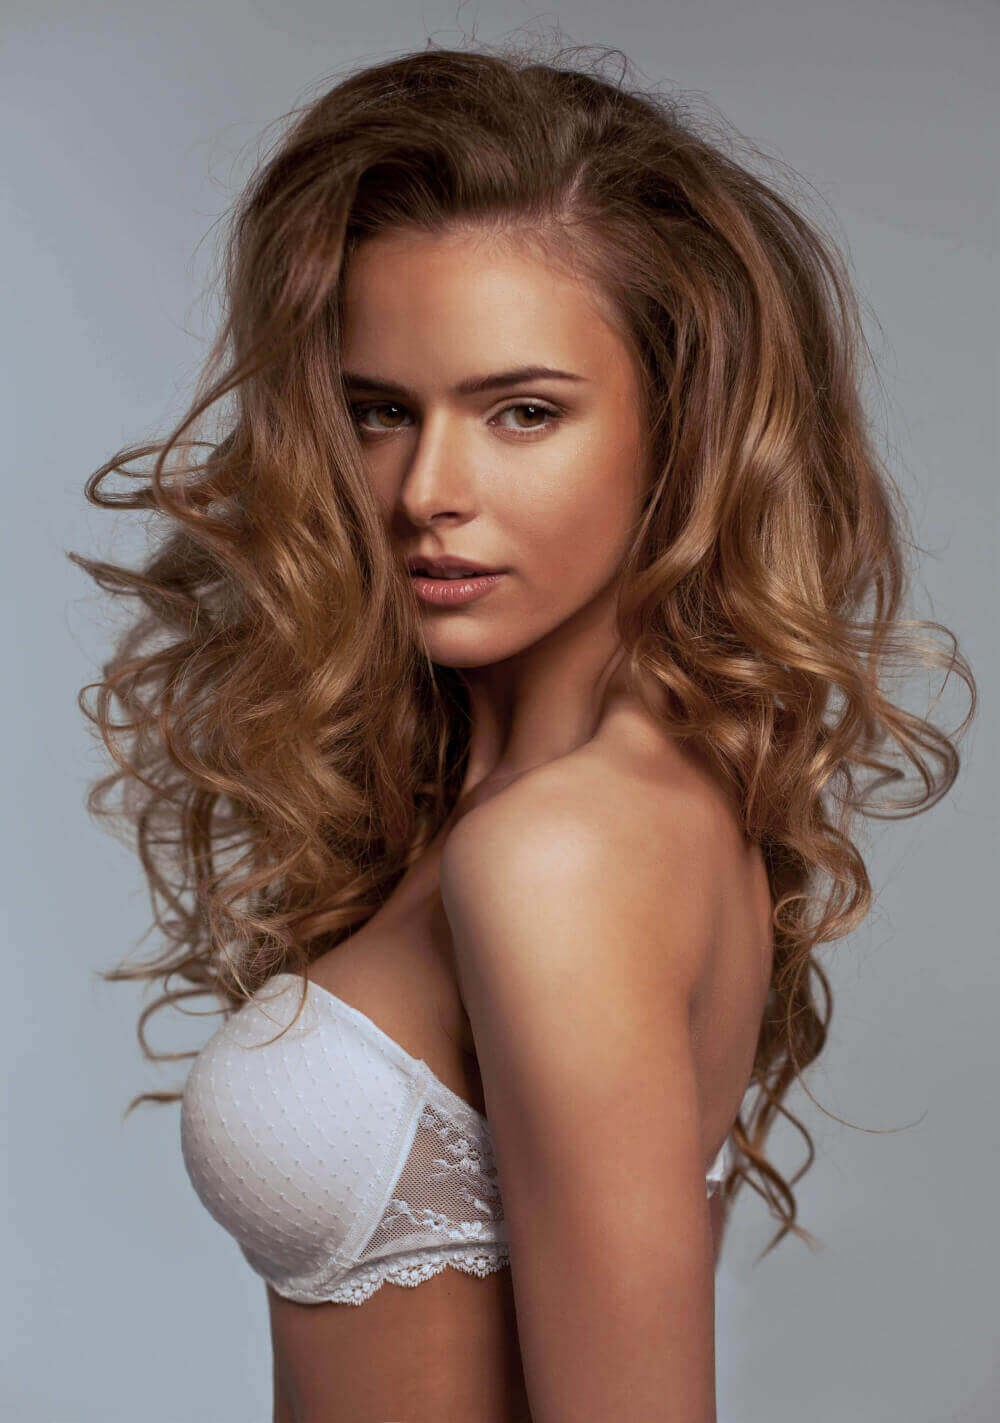 North Shore Cosmetic Surgery Blog    Breast Augmentation Before and After: What Really Changes After Surgery